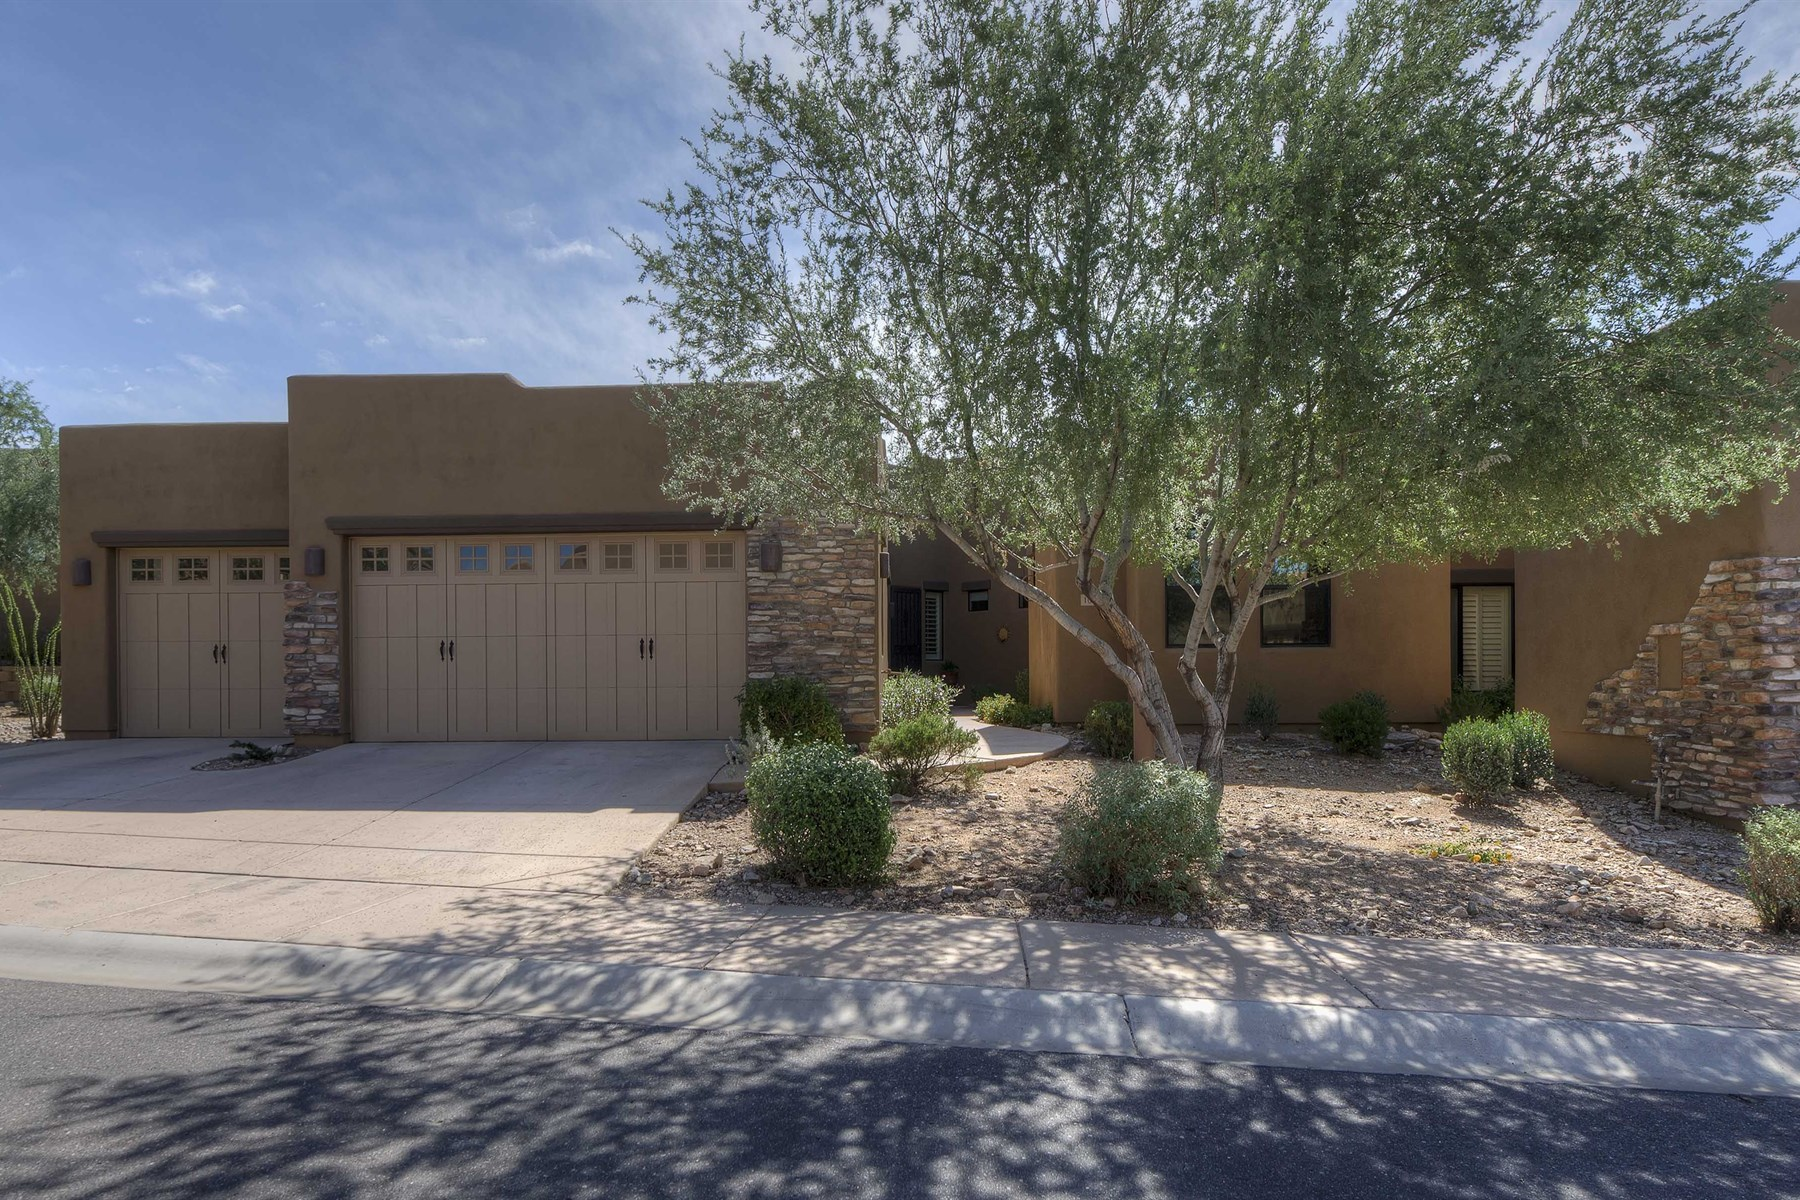 Townhouse for Sale at Exceptional one level patio home in gated resort style community 13300 E Via Linda -- 1043 Scottsdale, Arizona 85259 United States